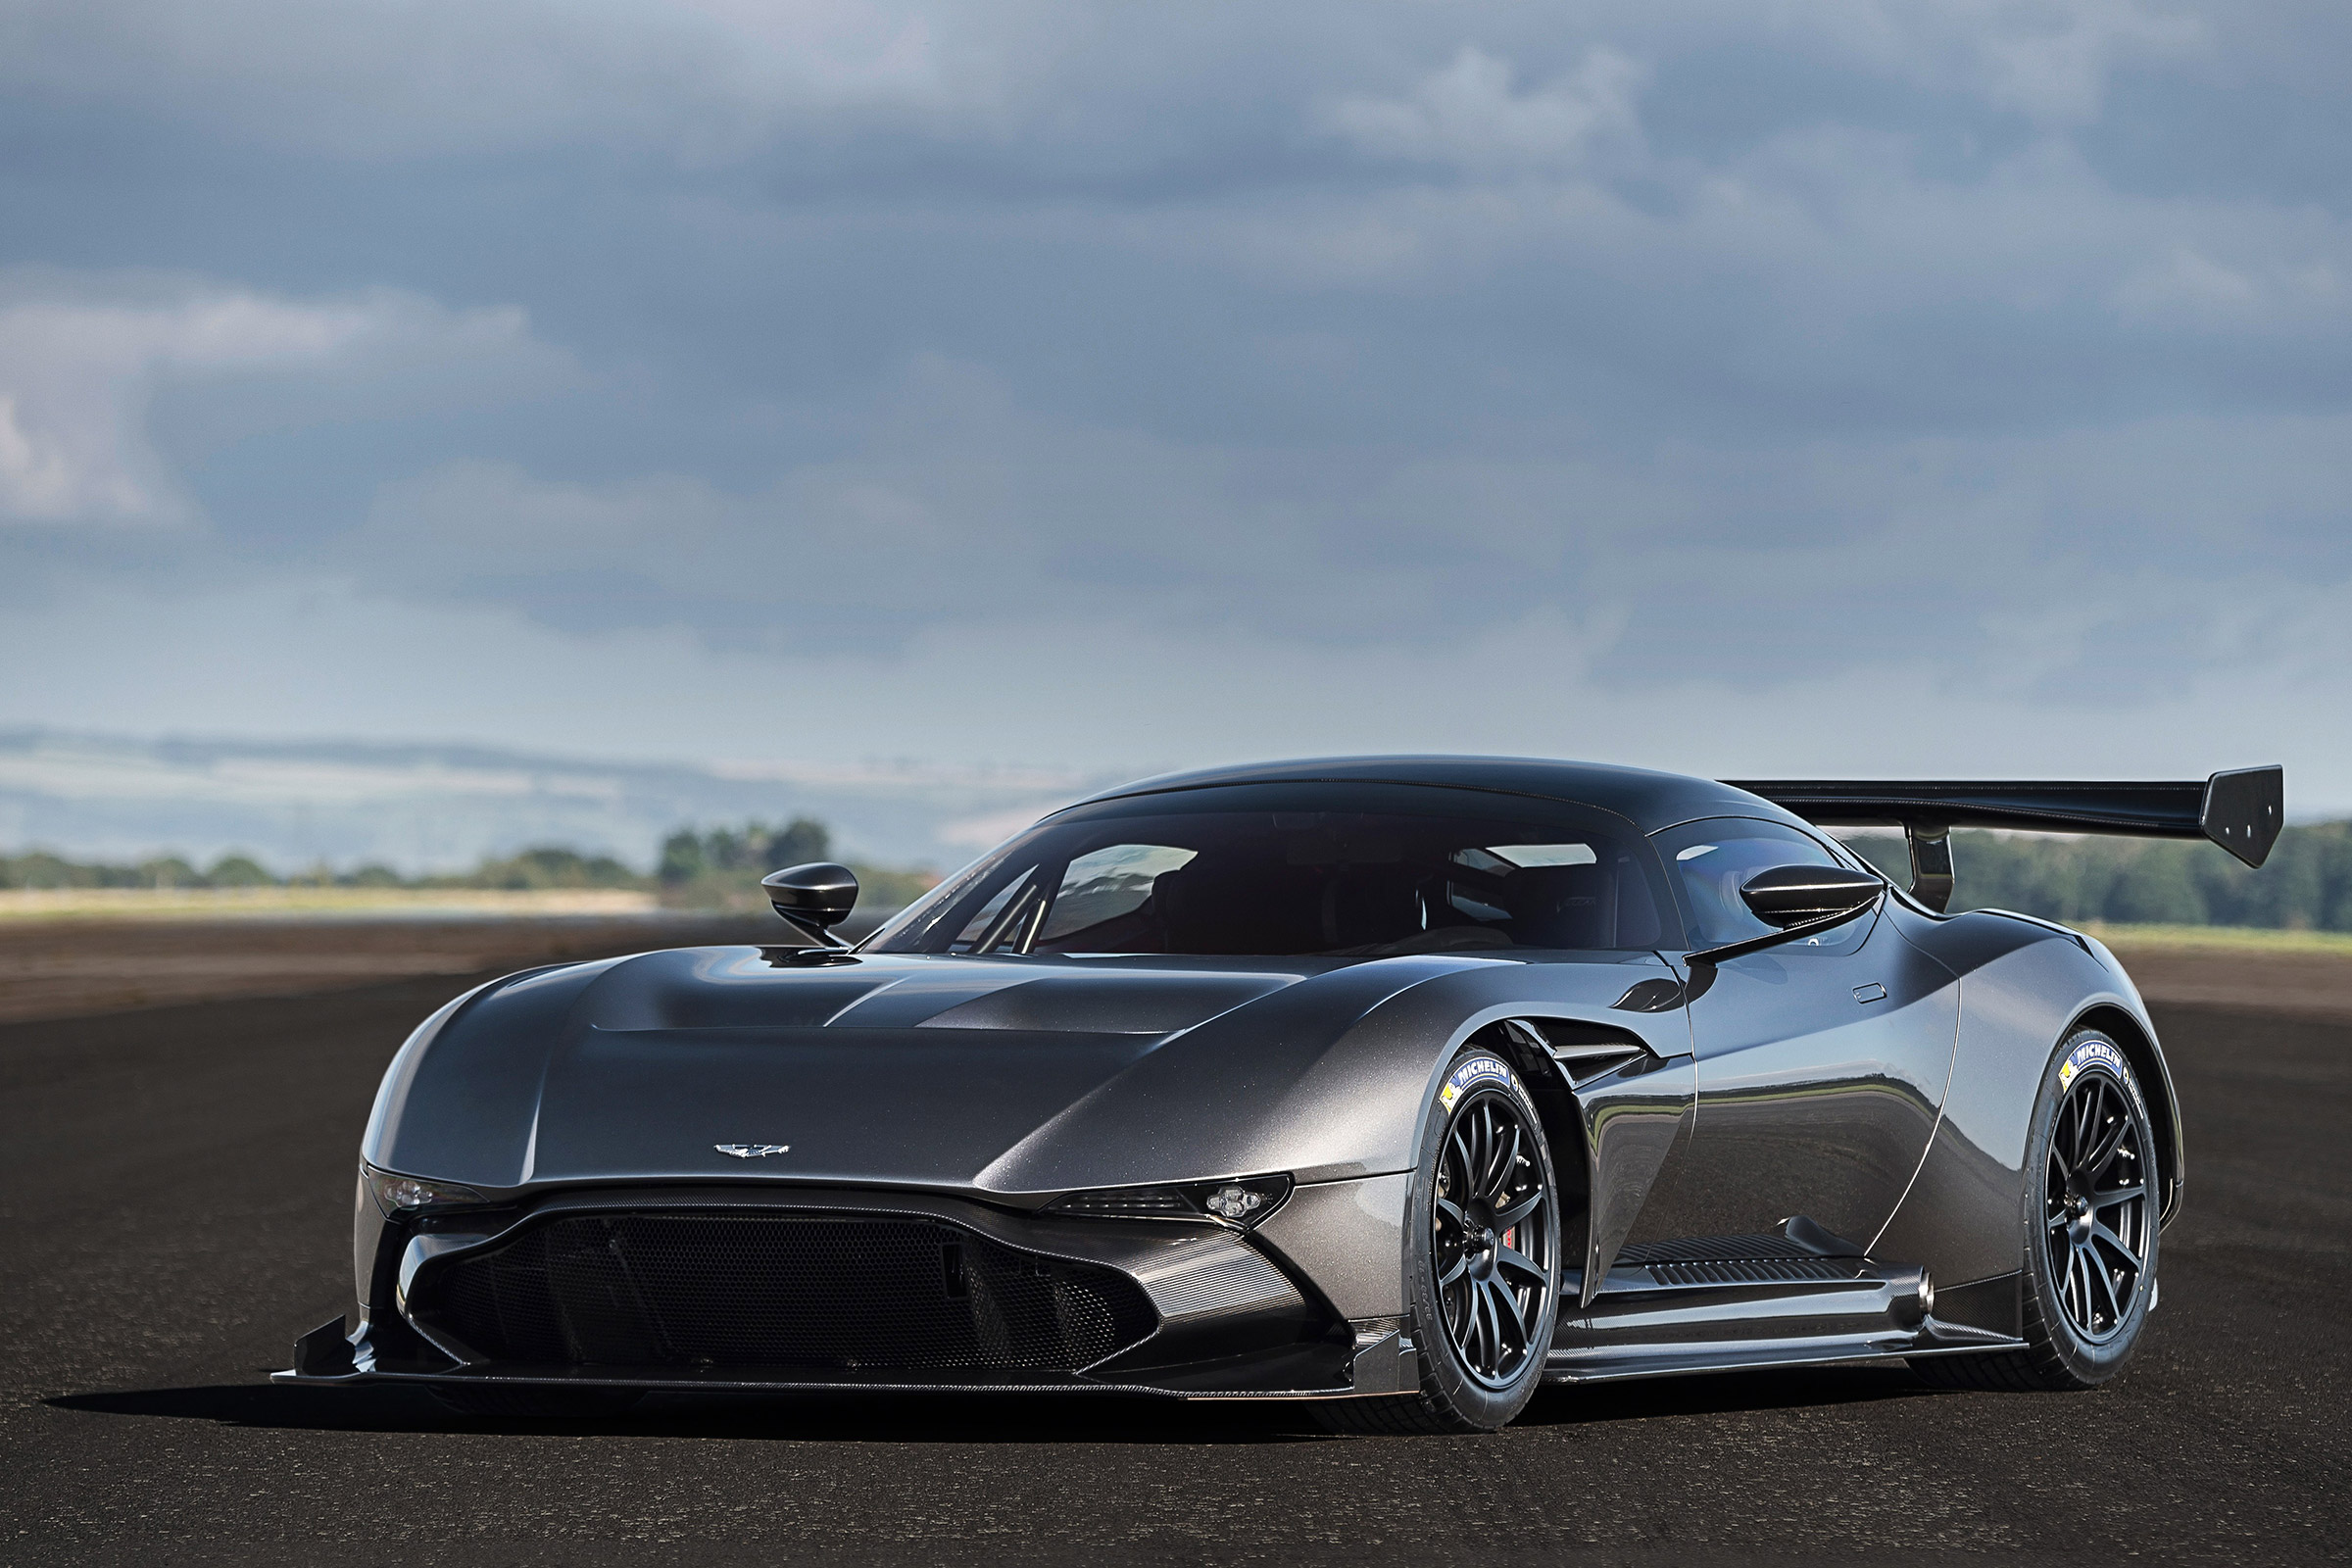 Aston Martin Vulcan Video Latest News And All You Need To Know Evo